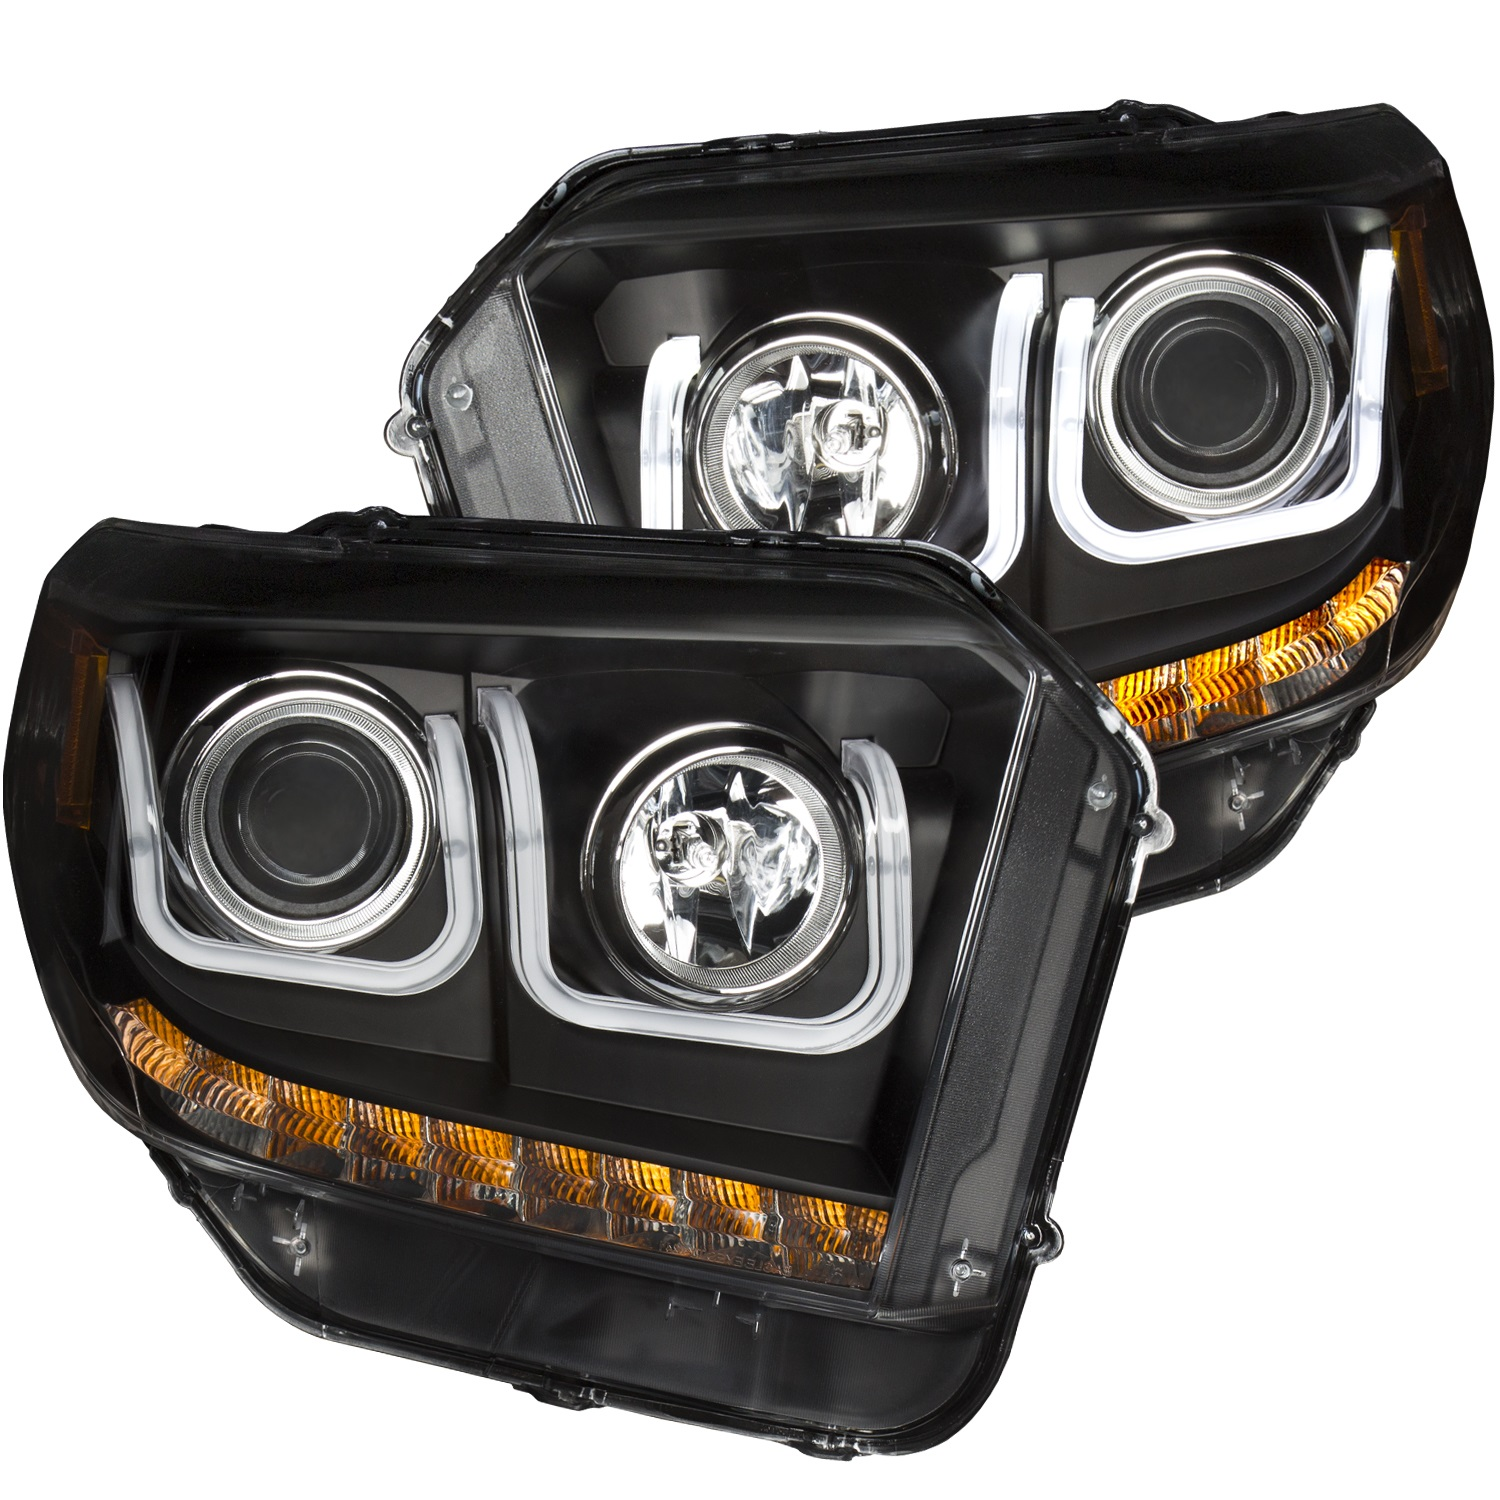 Anzo USA 111318 Projector Headlight Set Fits 14-19 Tundra